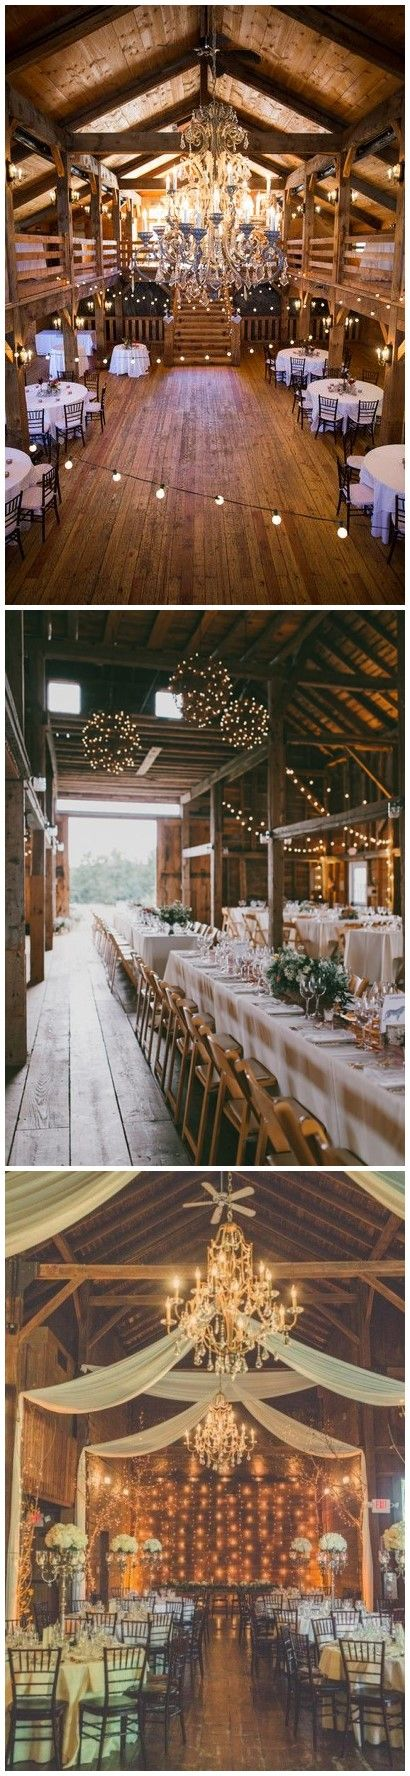 Rustic Weddings » 19 Must See Rustic Wedding Venue Ideas »   ❤️ More:  http://www.weddinginclude.com/2017/05/must-see-rustic-wedding-venue-ideas/